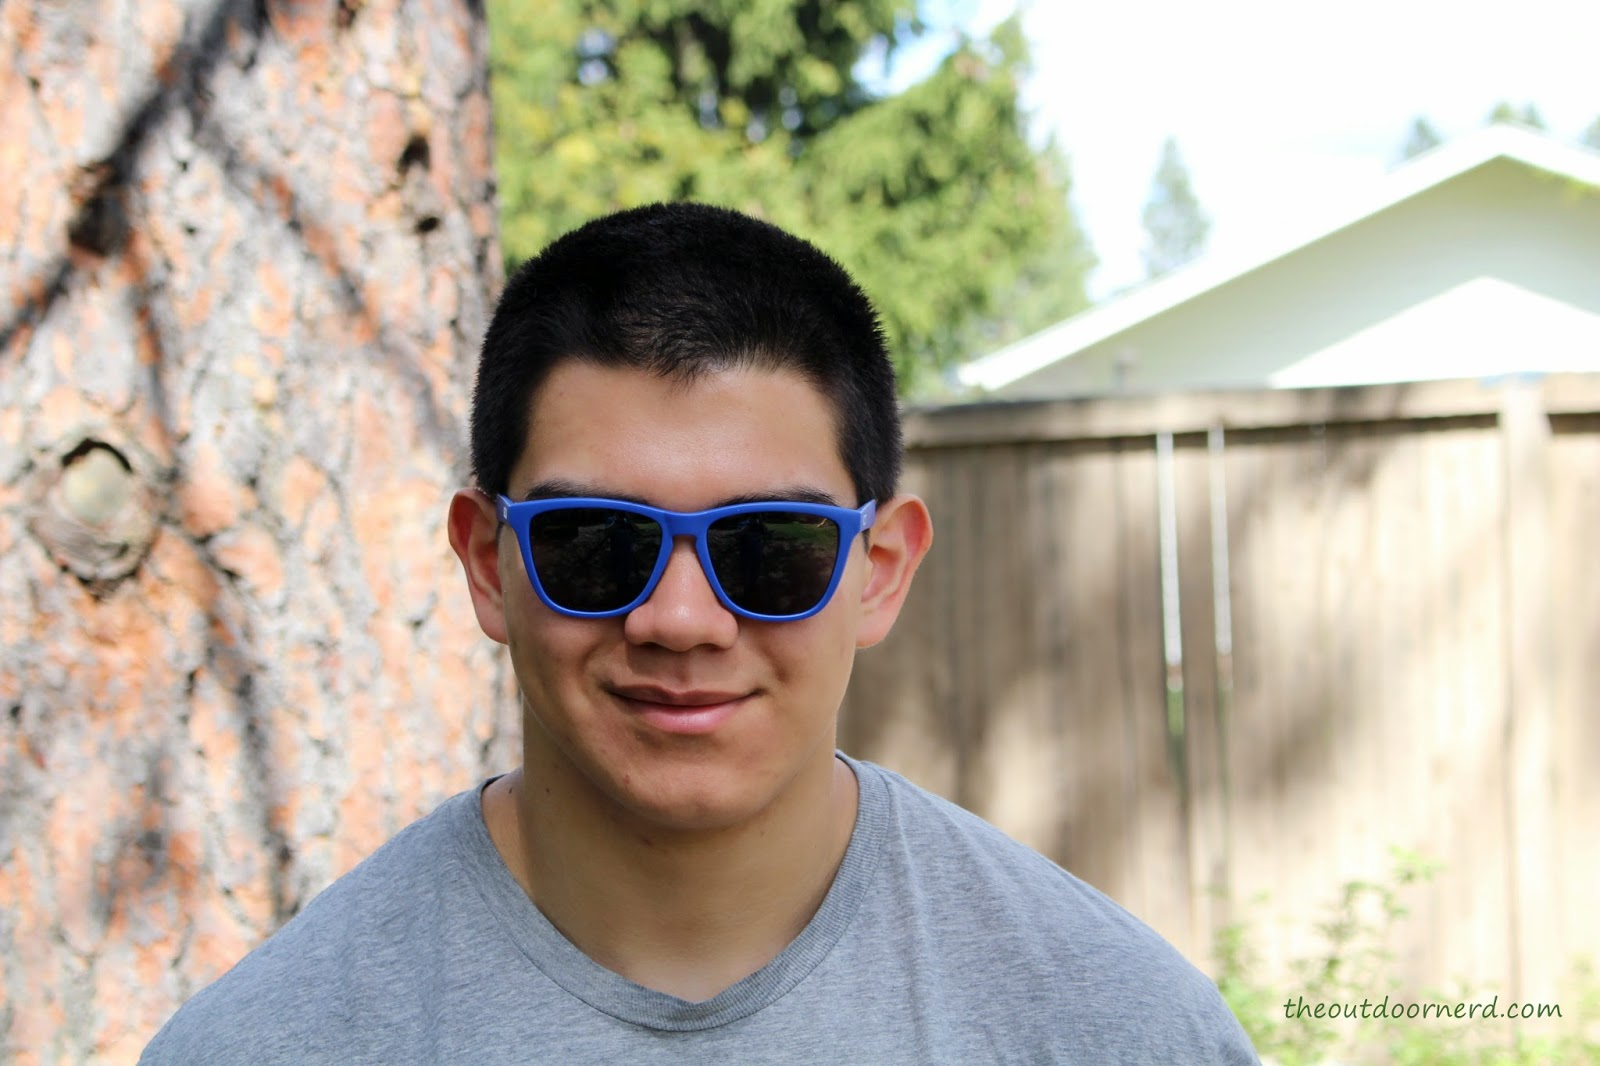 Nectar Cruze Sunglasses: Young Guy